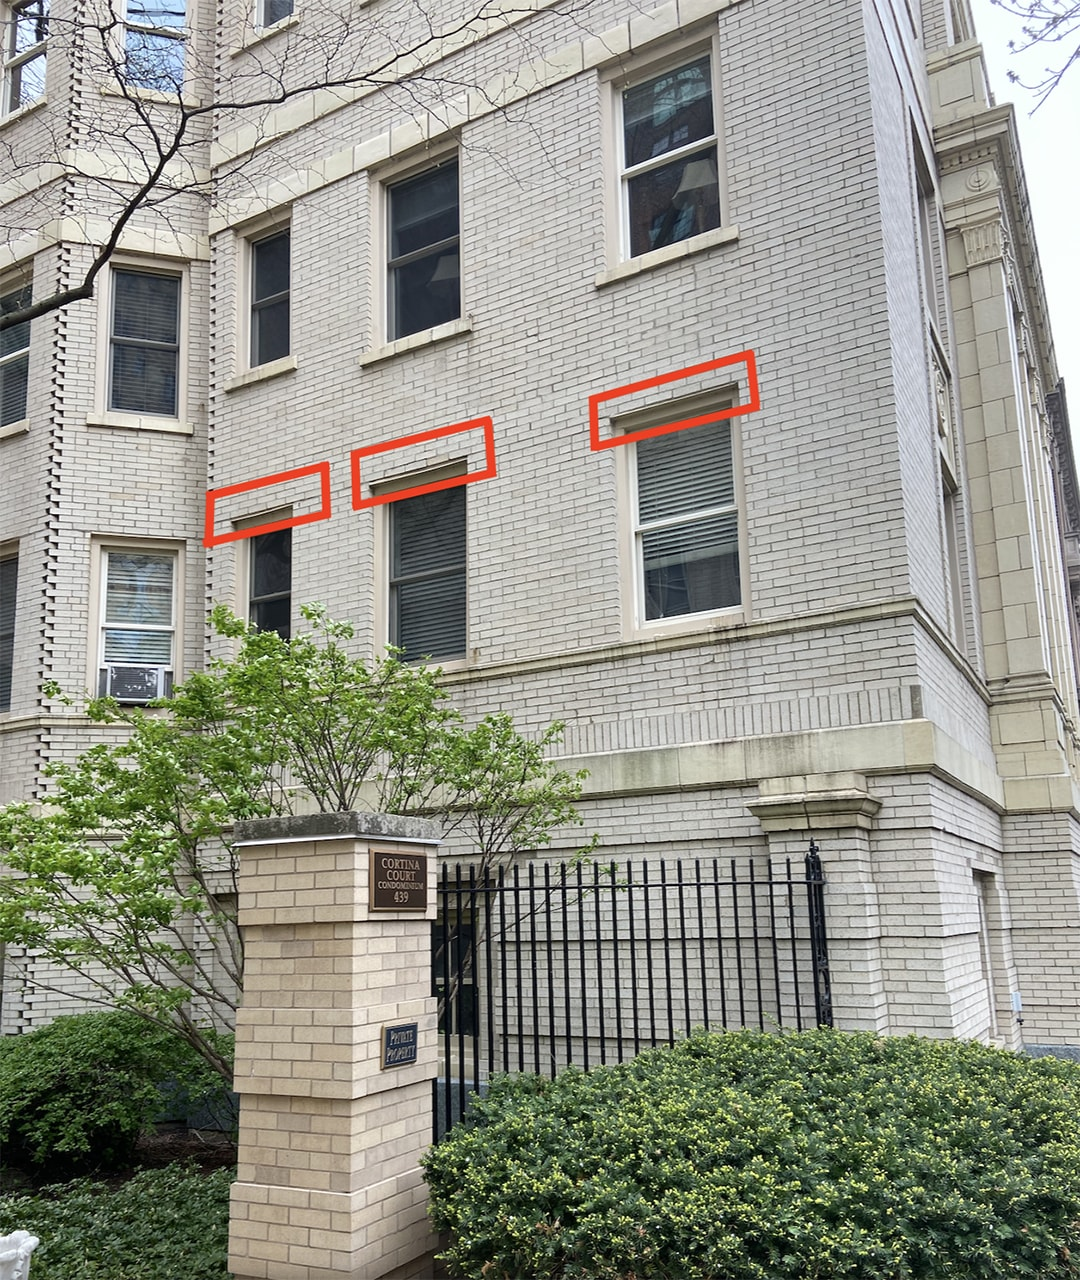 Diagram showing location of lintels above windows